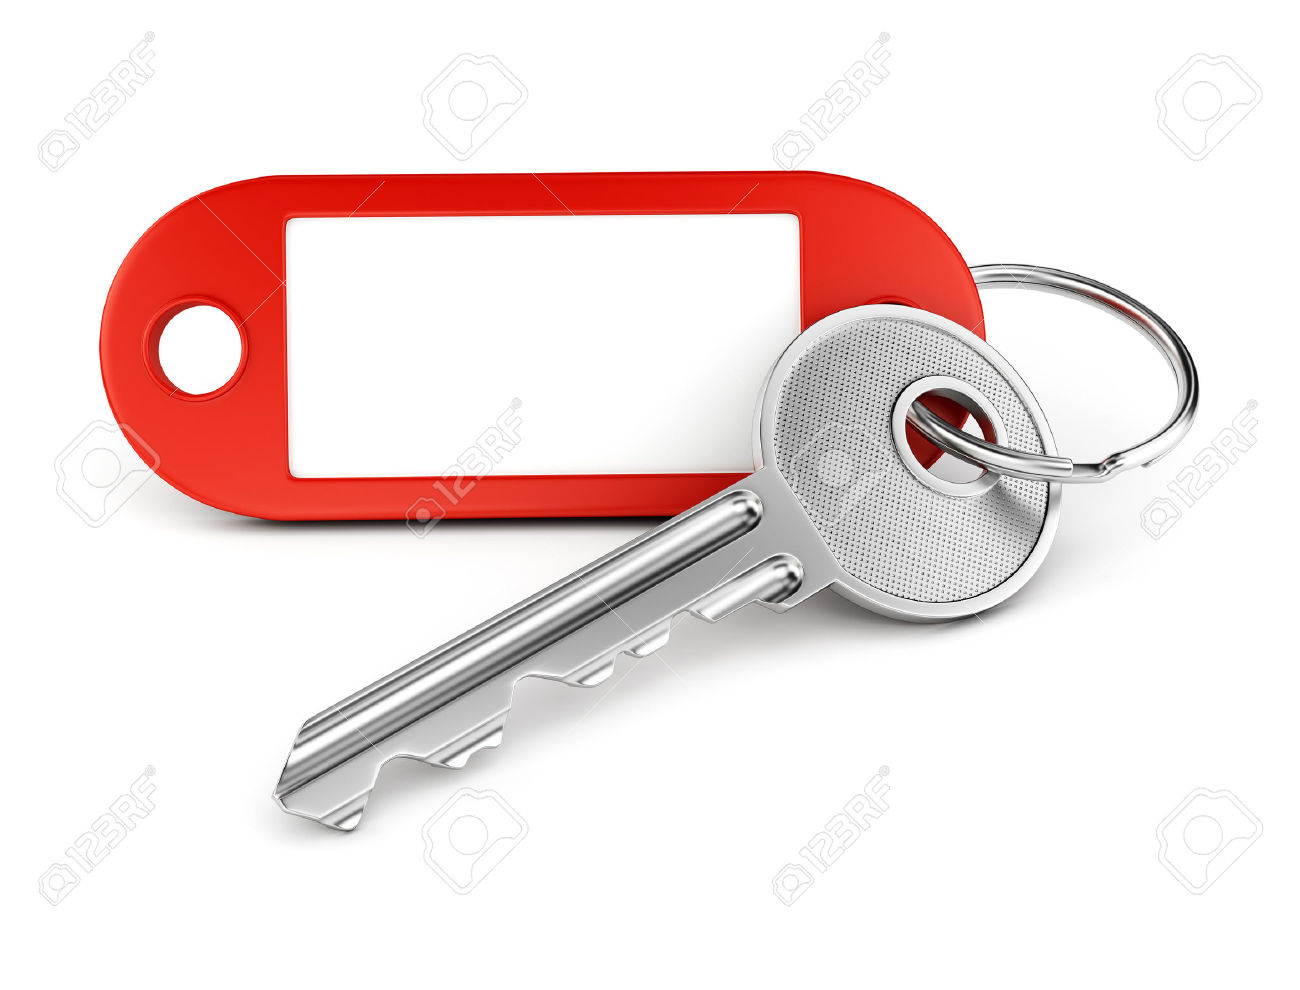 Door Key And Red Plastic Keyring With Blank Tag For Text Or Number.